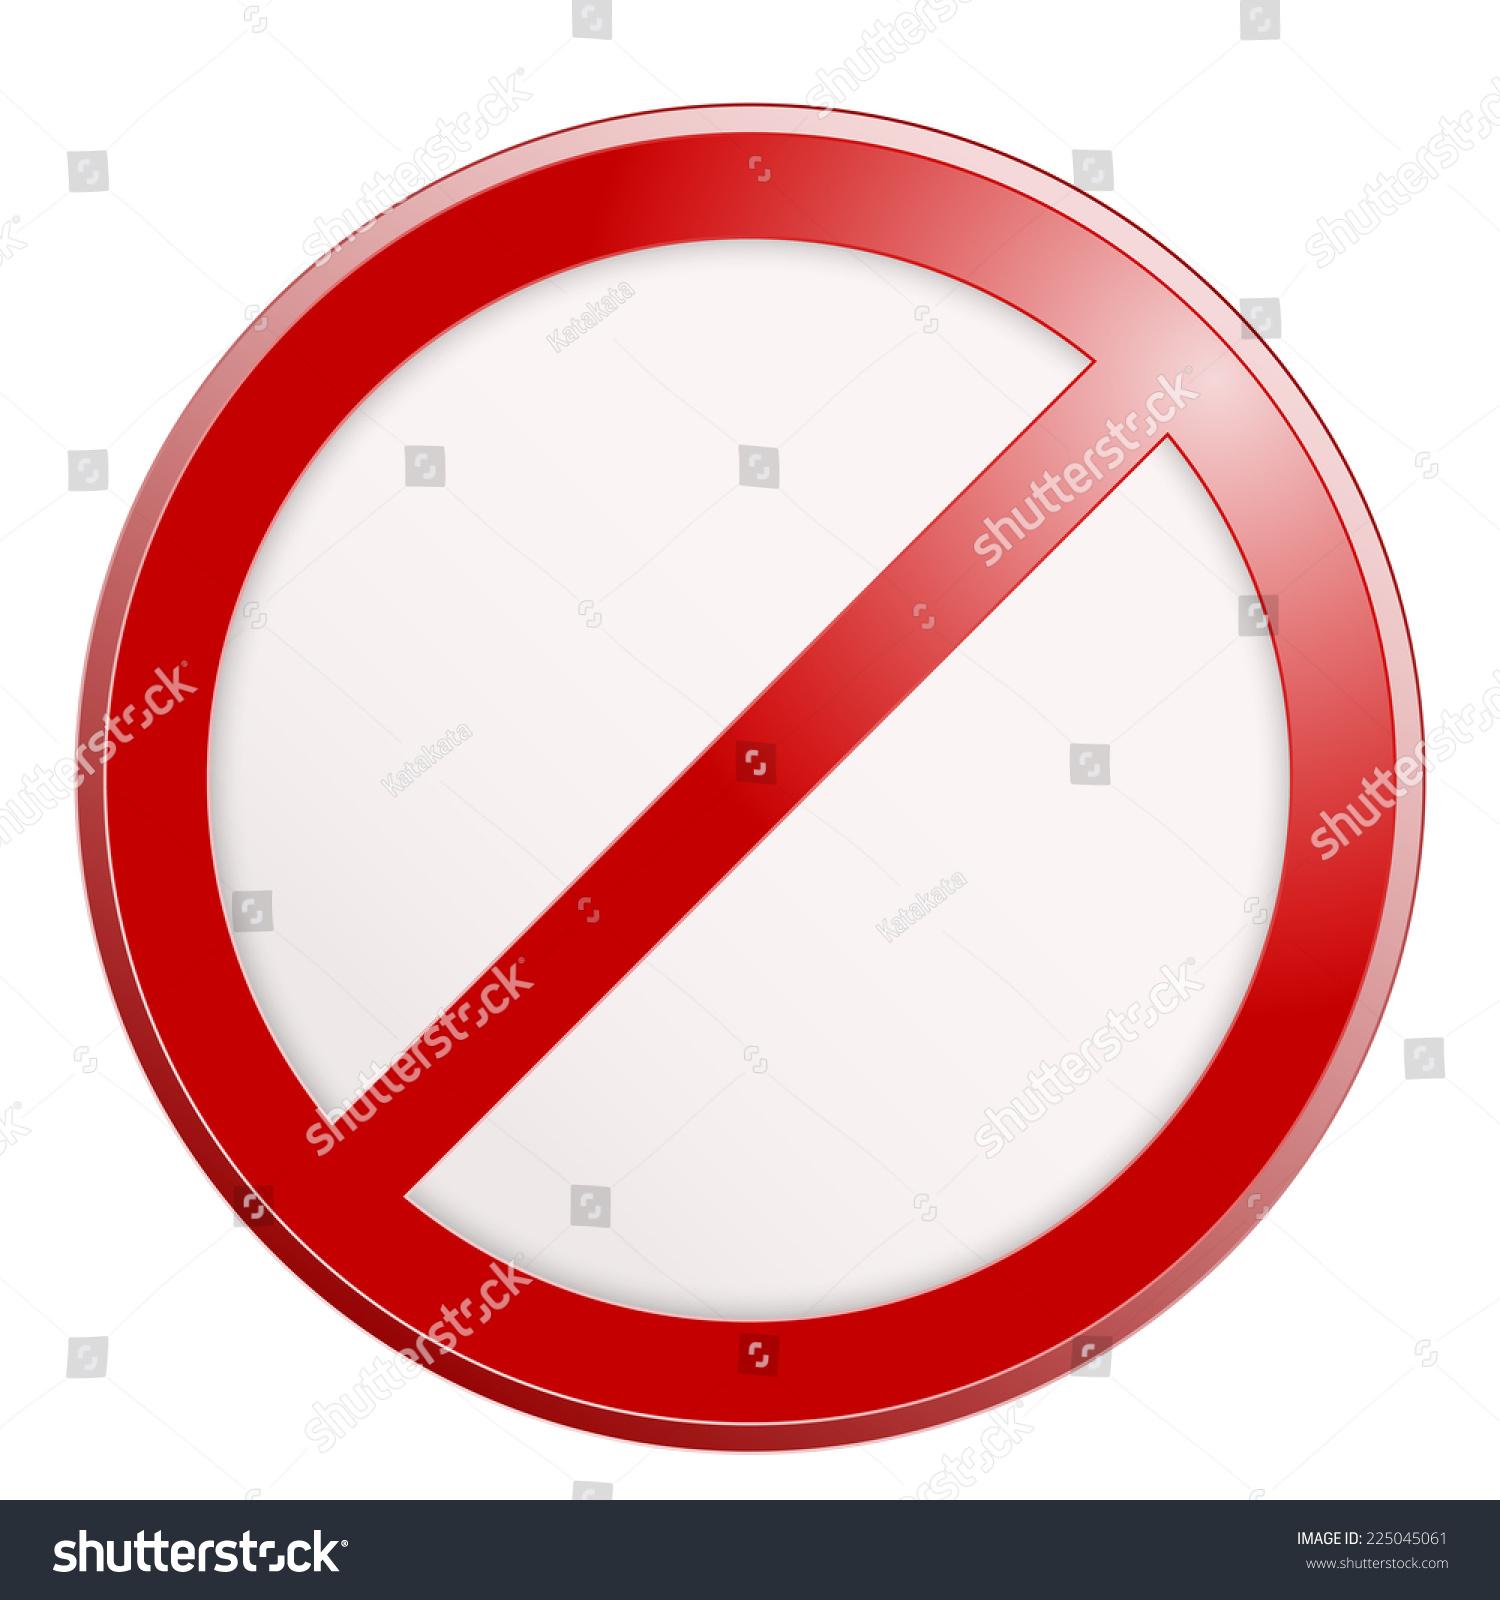 Stop sign no sign template vector stock vector 225045061 stop sign no sign template vector illustration pronofoot35fo Images